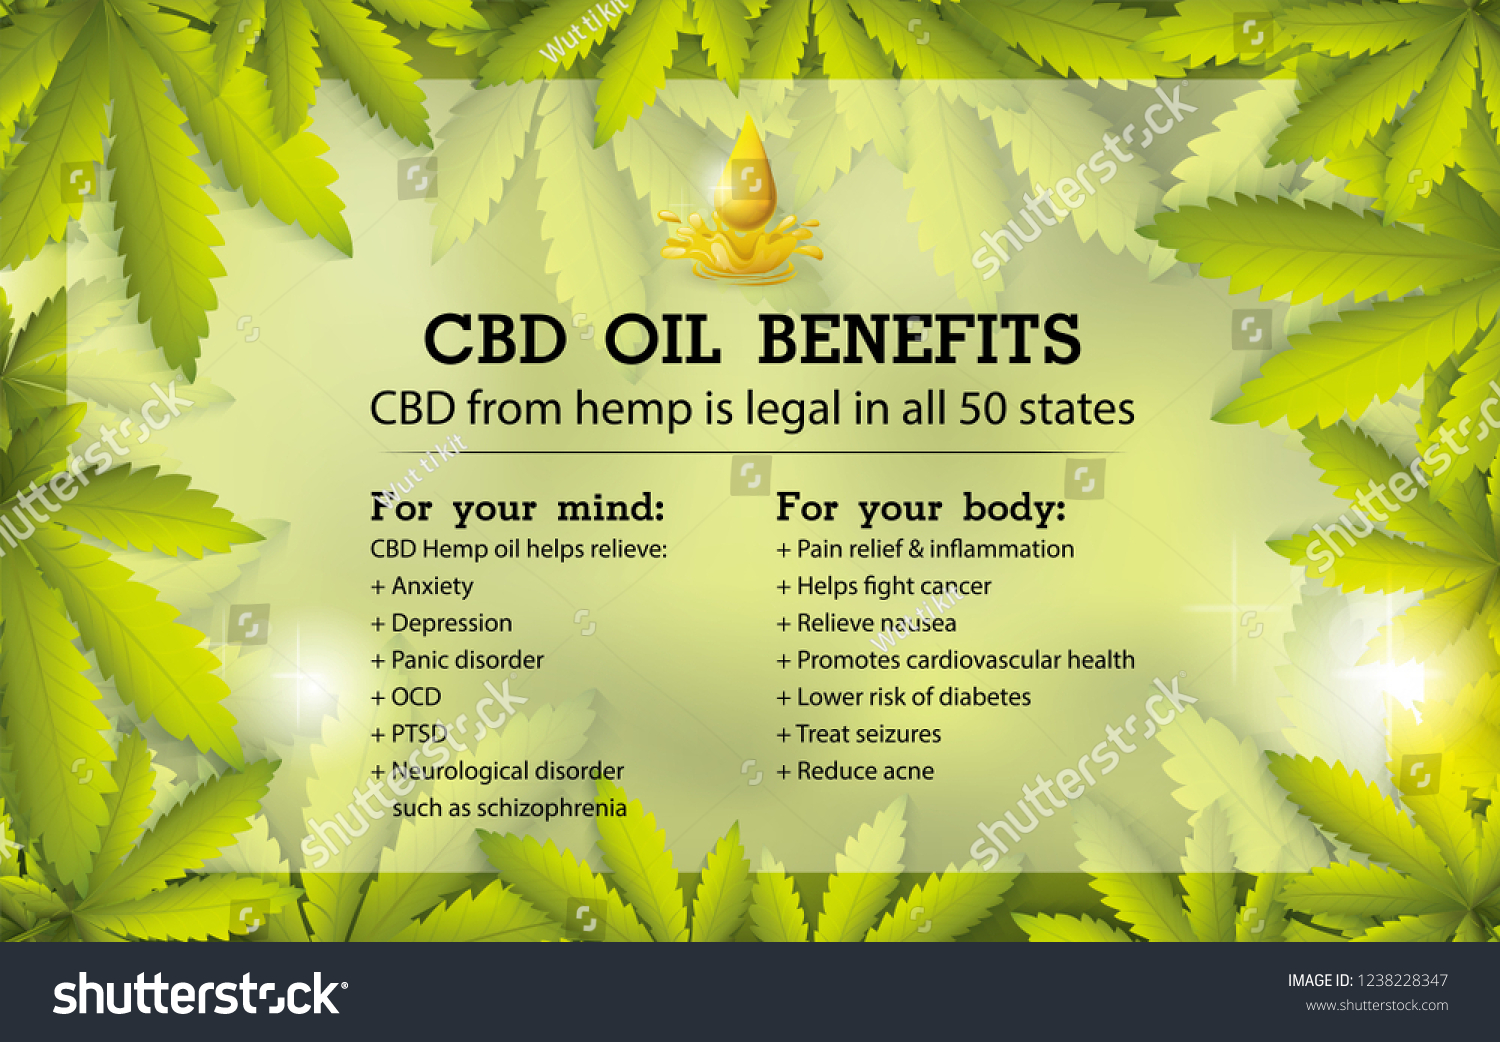 Cbd Oil Benefitsmedical Uses Cbd Oil Stock Vector Royalty Free 1238228347